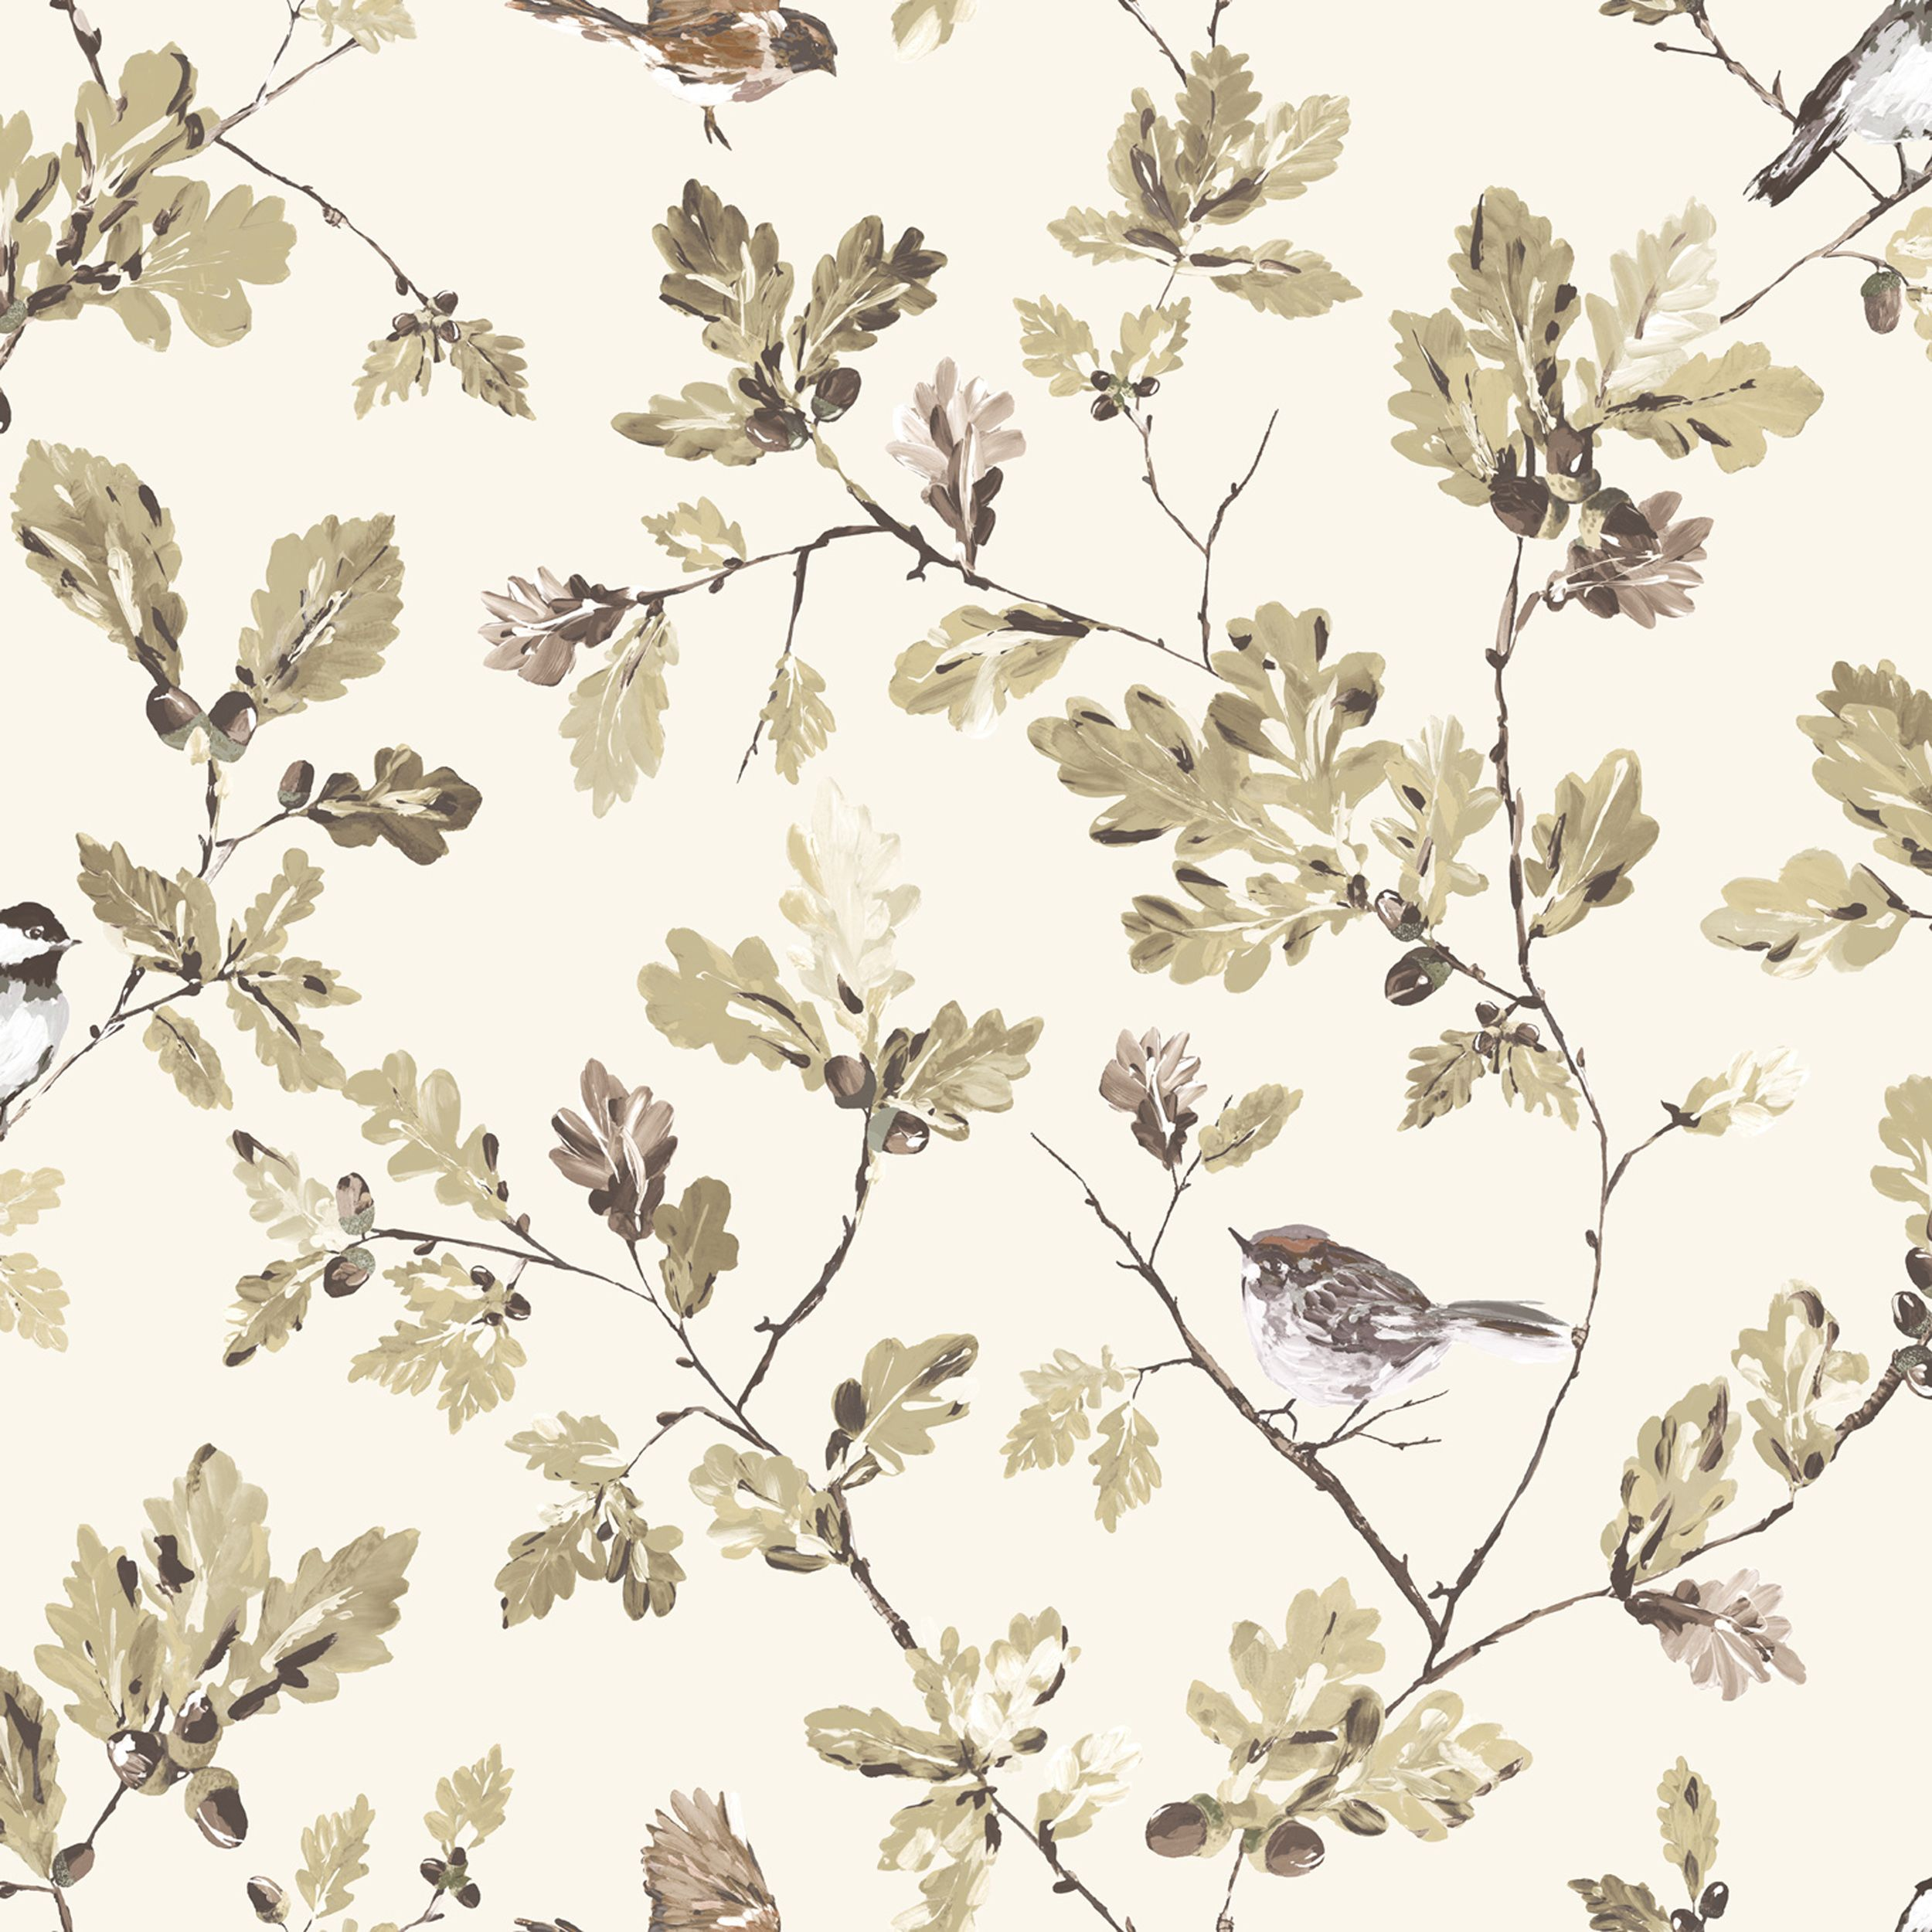 Acorn Trail Brown Cream Floral Birds Mica Wallpaper